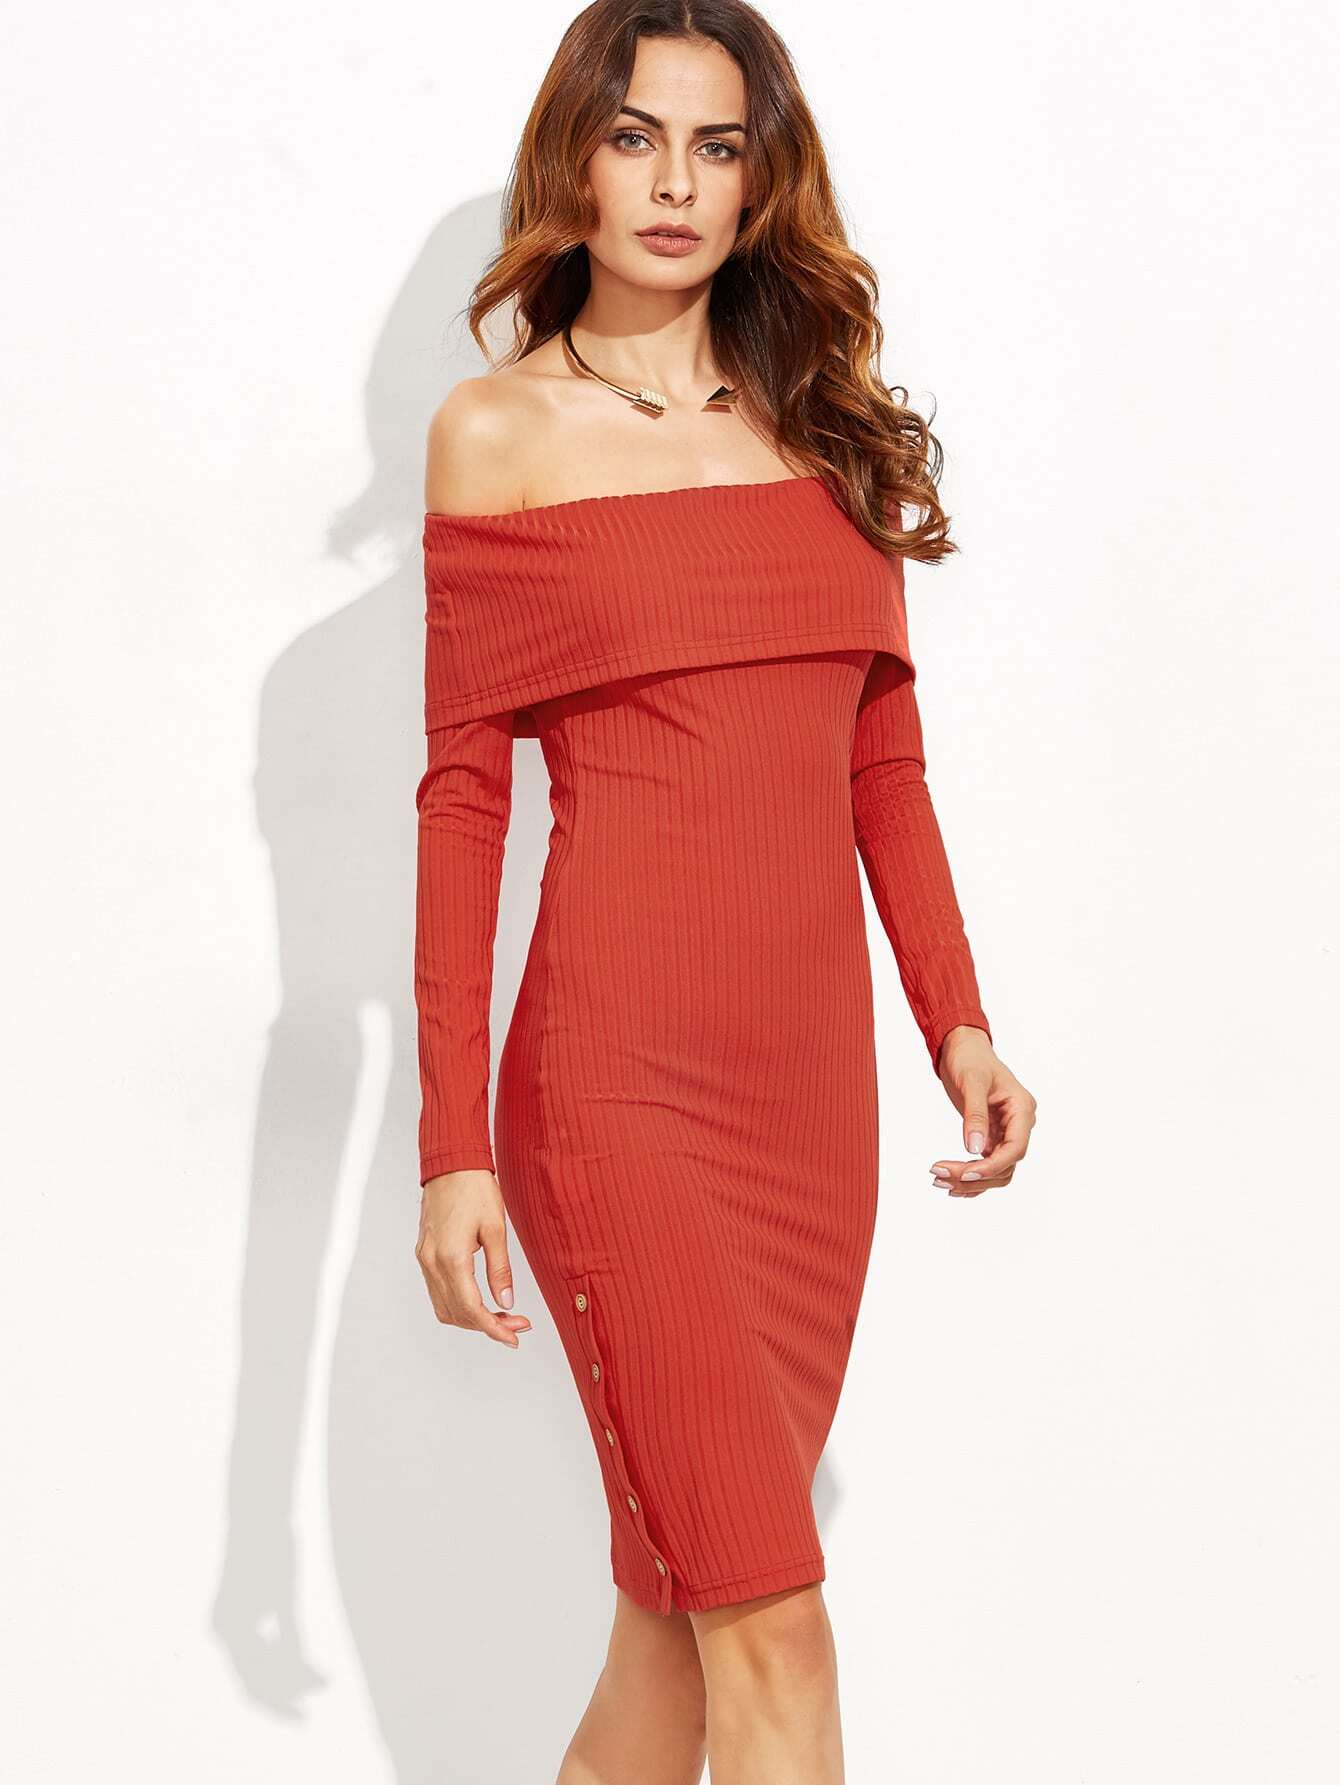 Red Foldover Off The Shoulder Button Side Ribbed Dress dress160831706